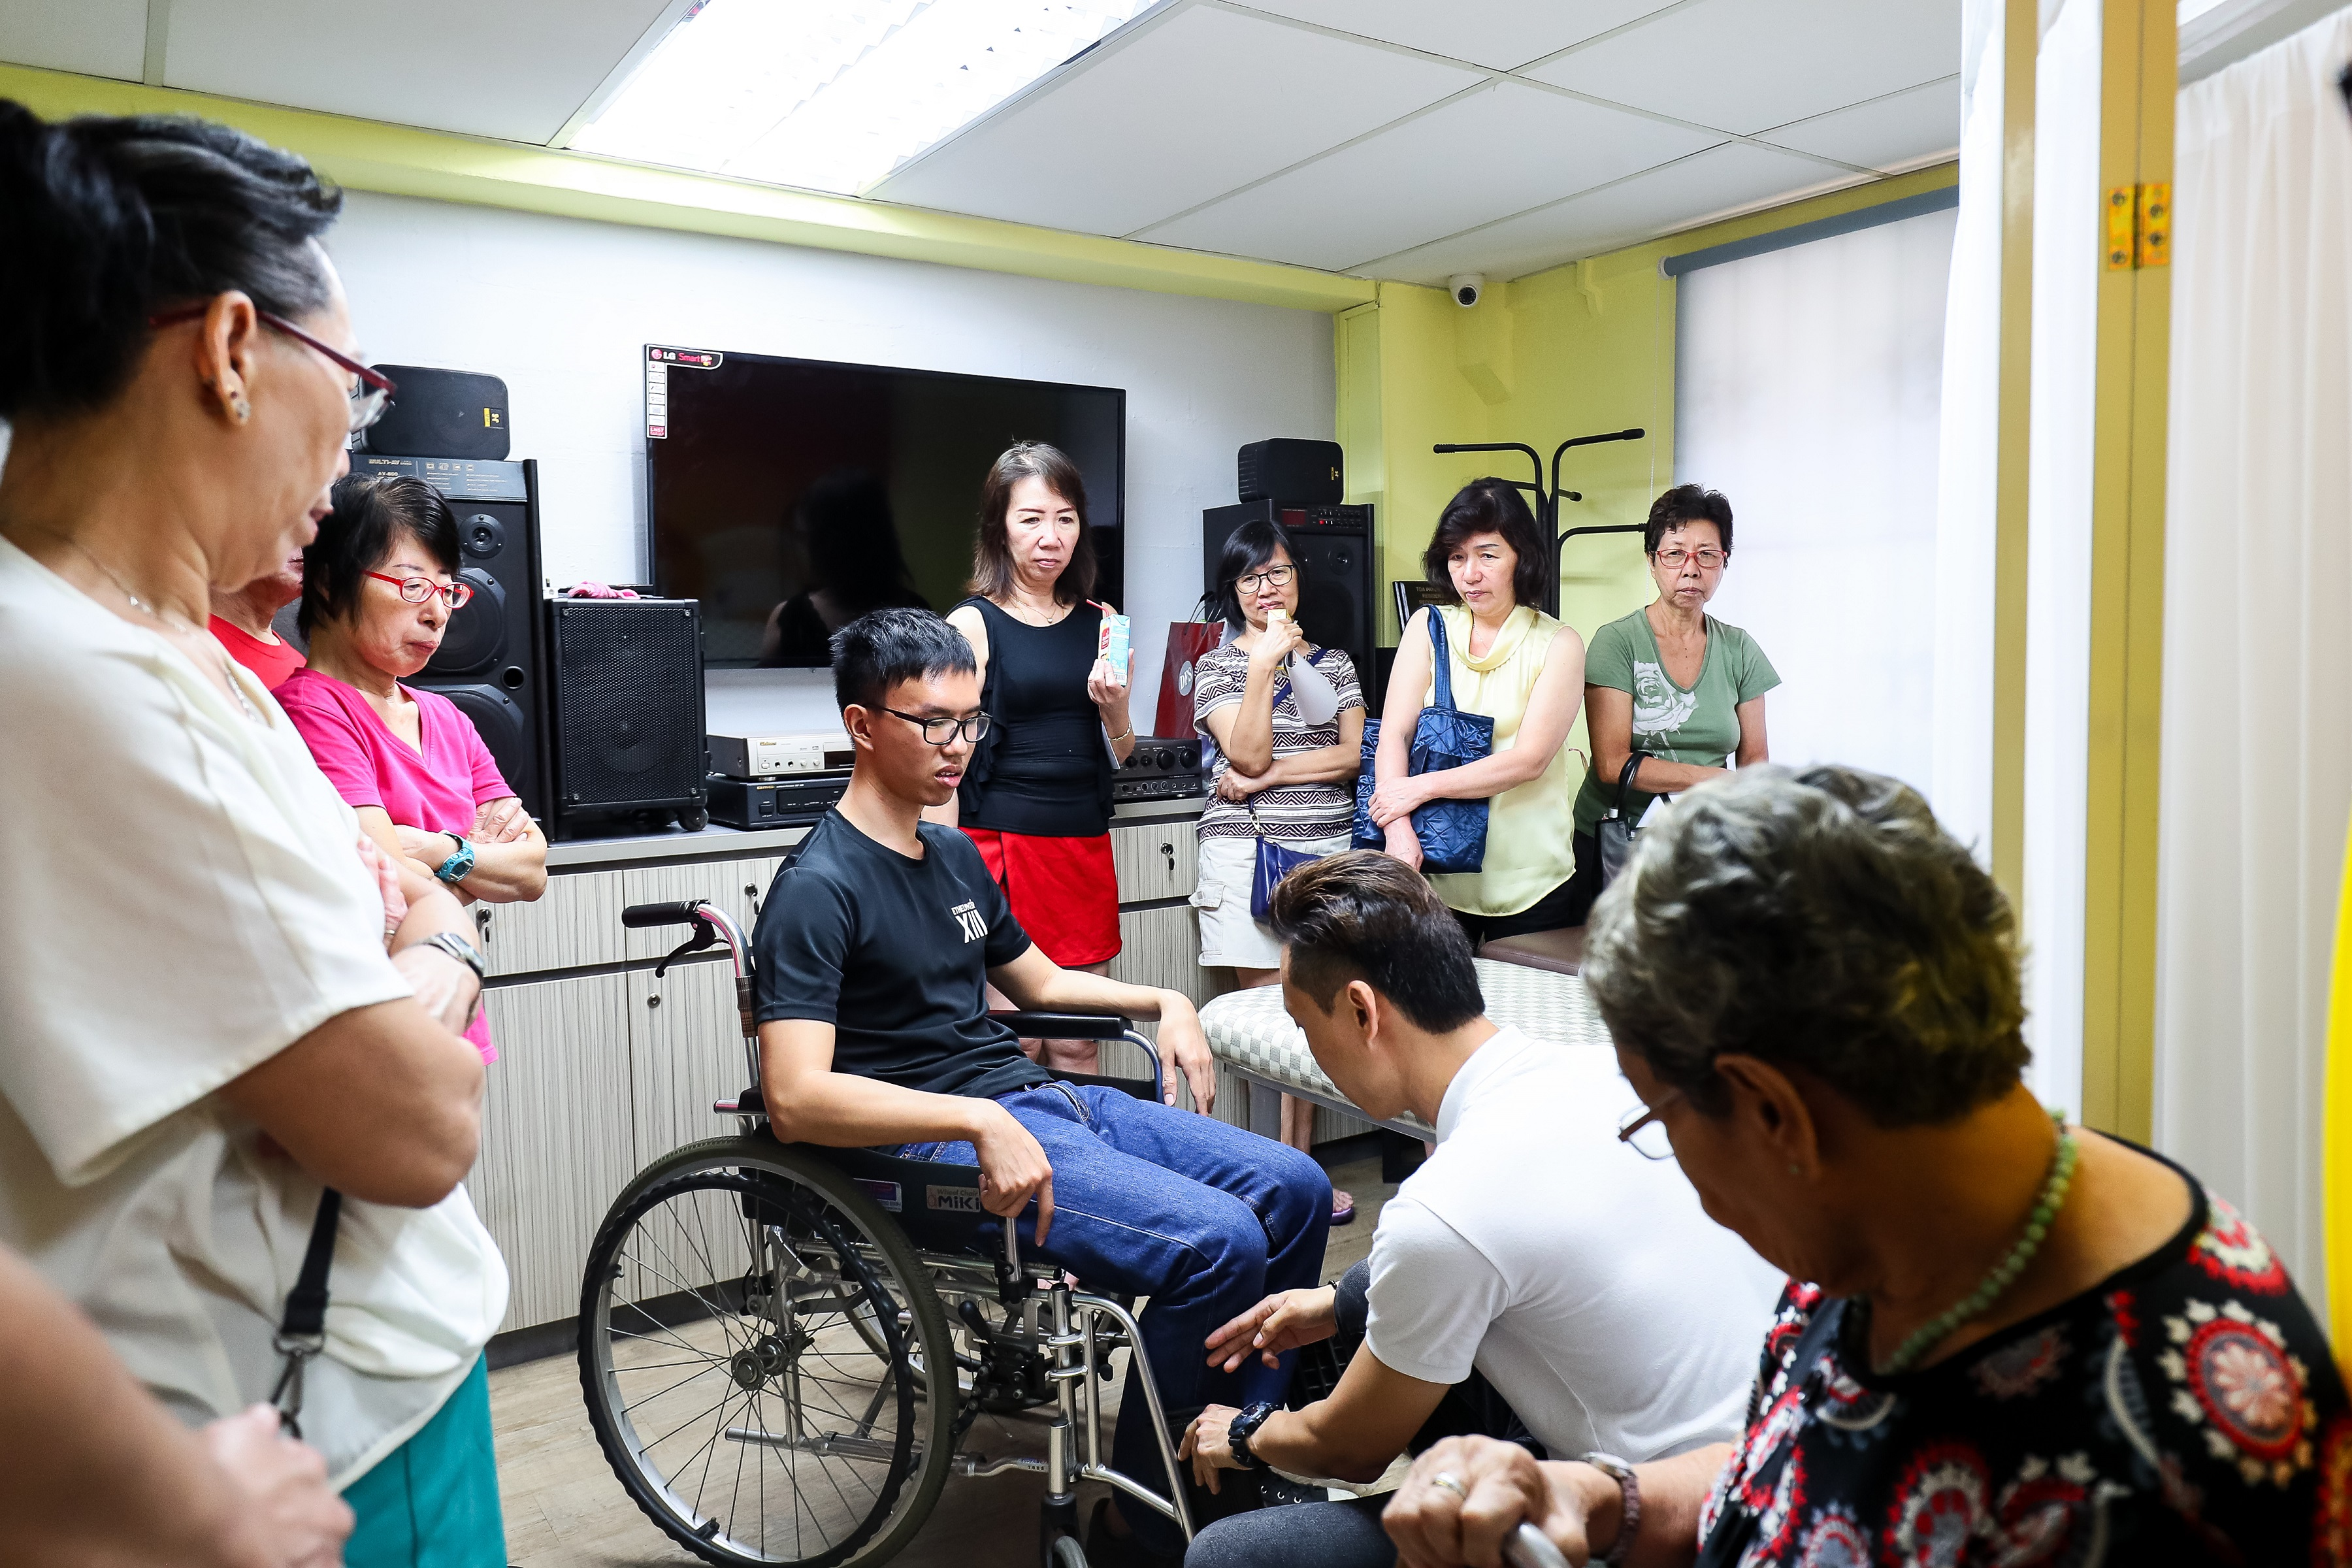 Residents from Toa Payoh Central Zone 1 learnt basic caregiving skills from a corporate volunteer from Coddle. It would help family members provide better care for seniors in their households.